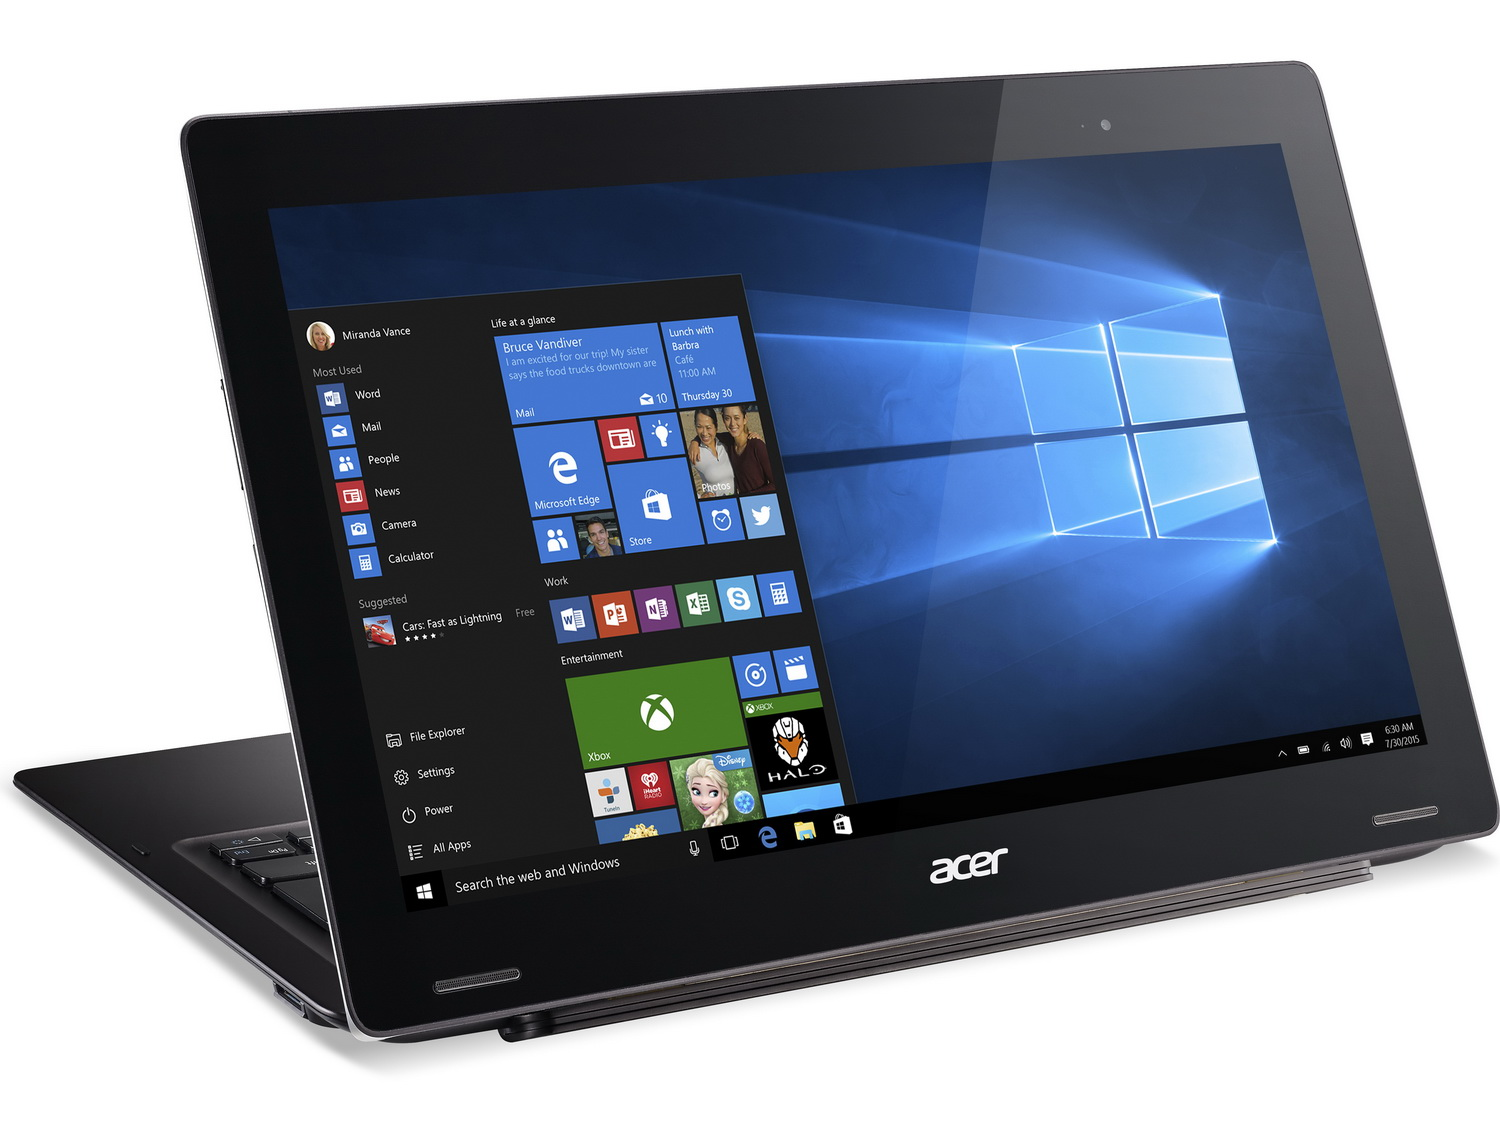 Acer Switch 12 S Pro 600 03